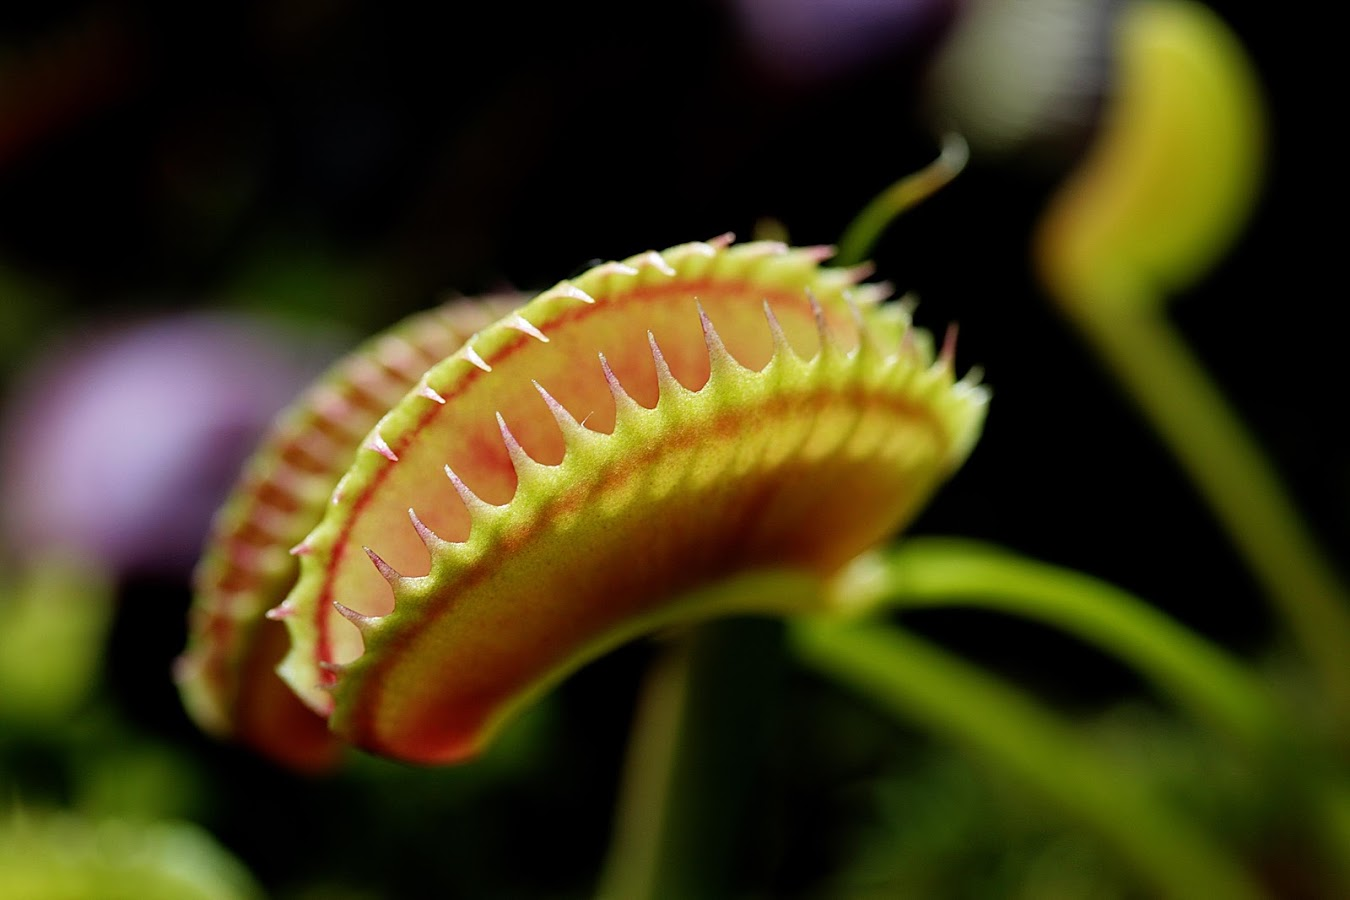 Venus Fly Trap Live Wallpaper 1.30 APK